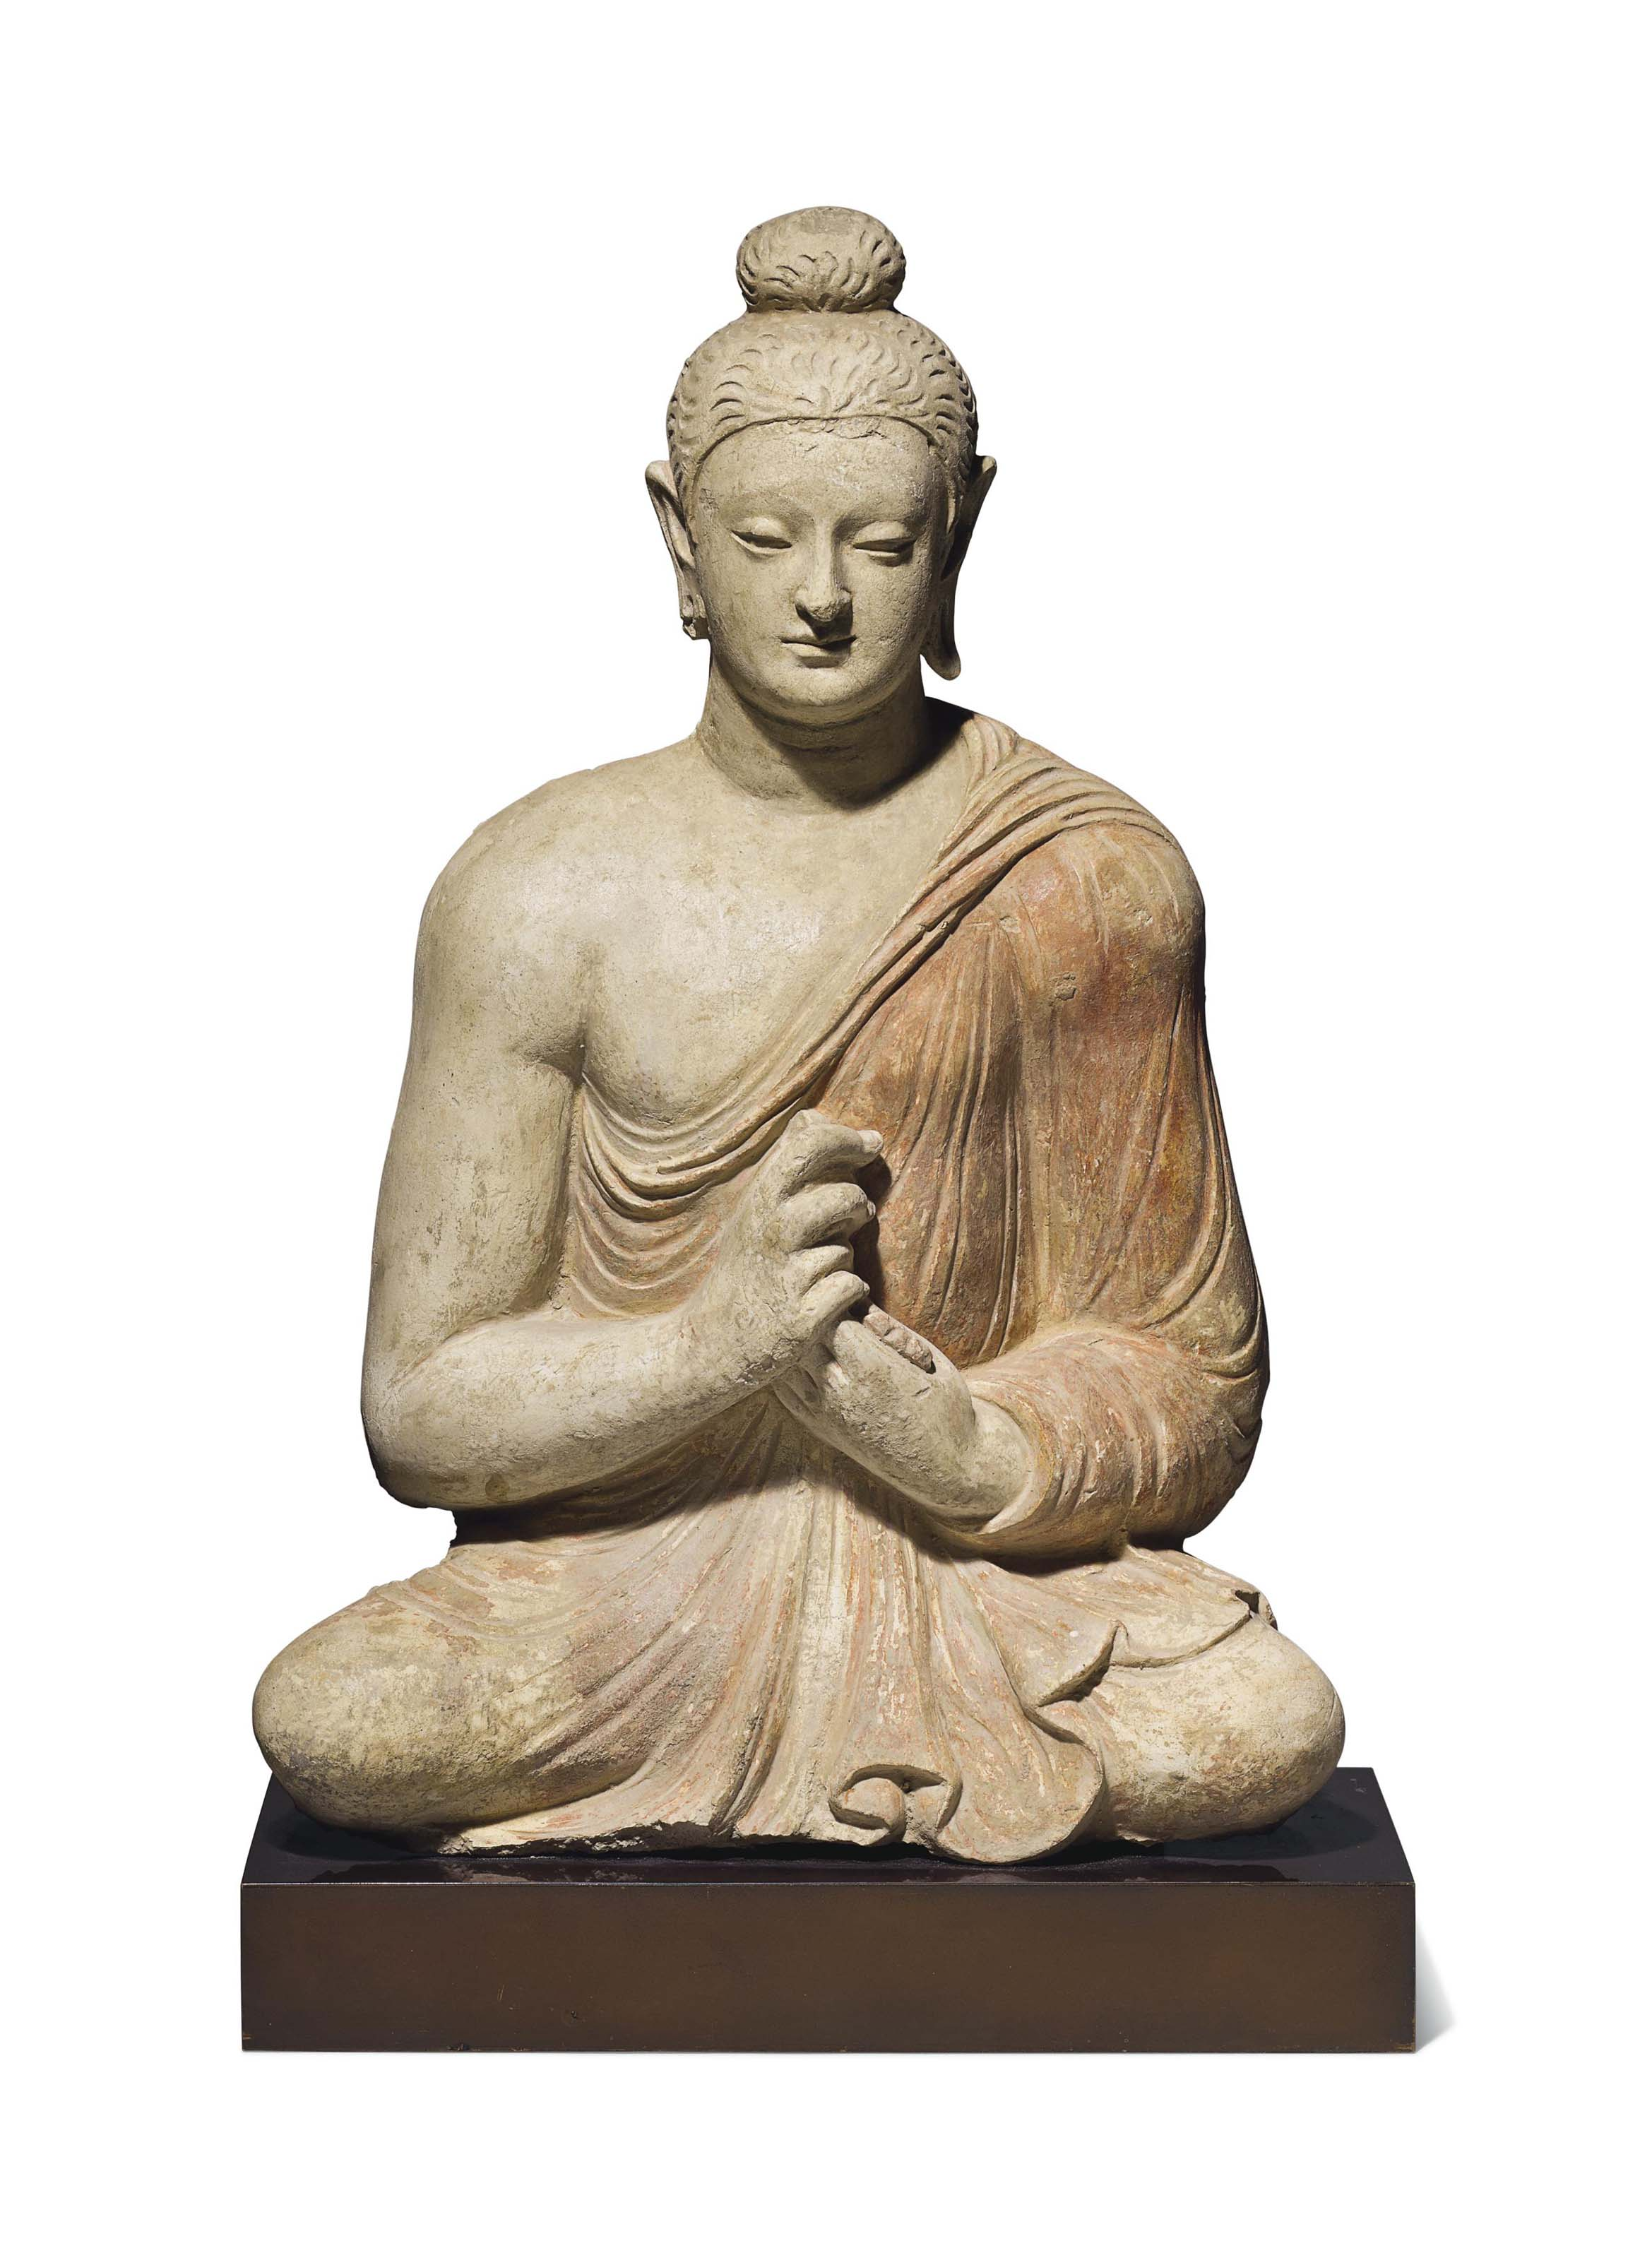 A Polychromed Stucco Figure Of Buddha Gandhara 3rd 4th Century Sculptures Statues Figures Gandhara Christie S